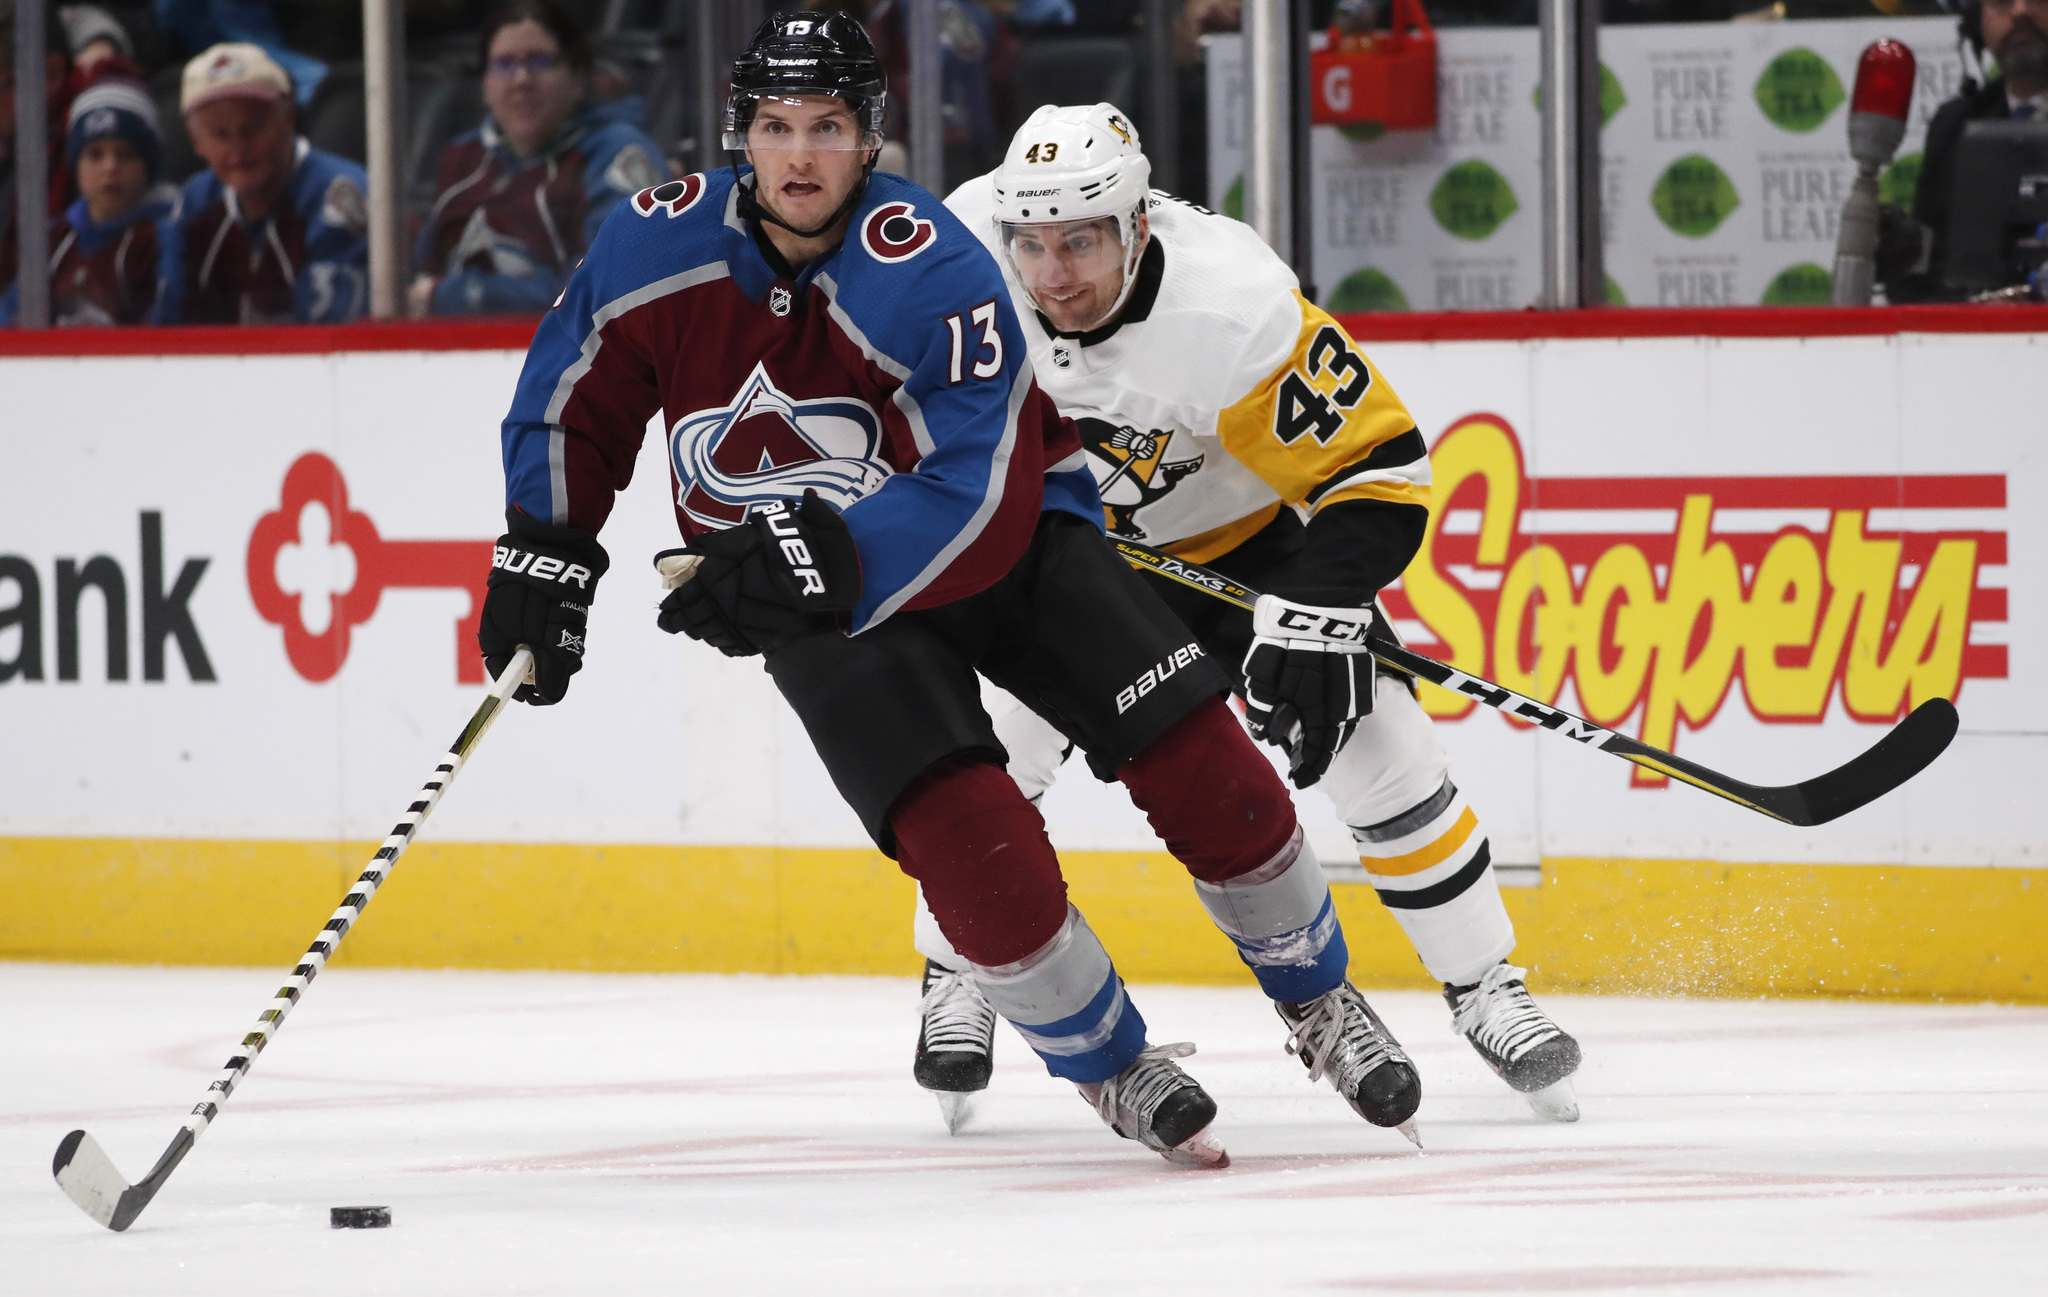 Colorado Avalanche centre Alexander Kerfoot made a big impression in his first season with 19 goals and 24 assists. (David Zalubowski / The Associated Press Files)</p>